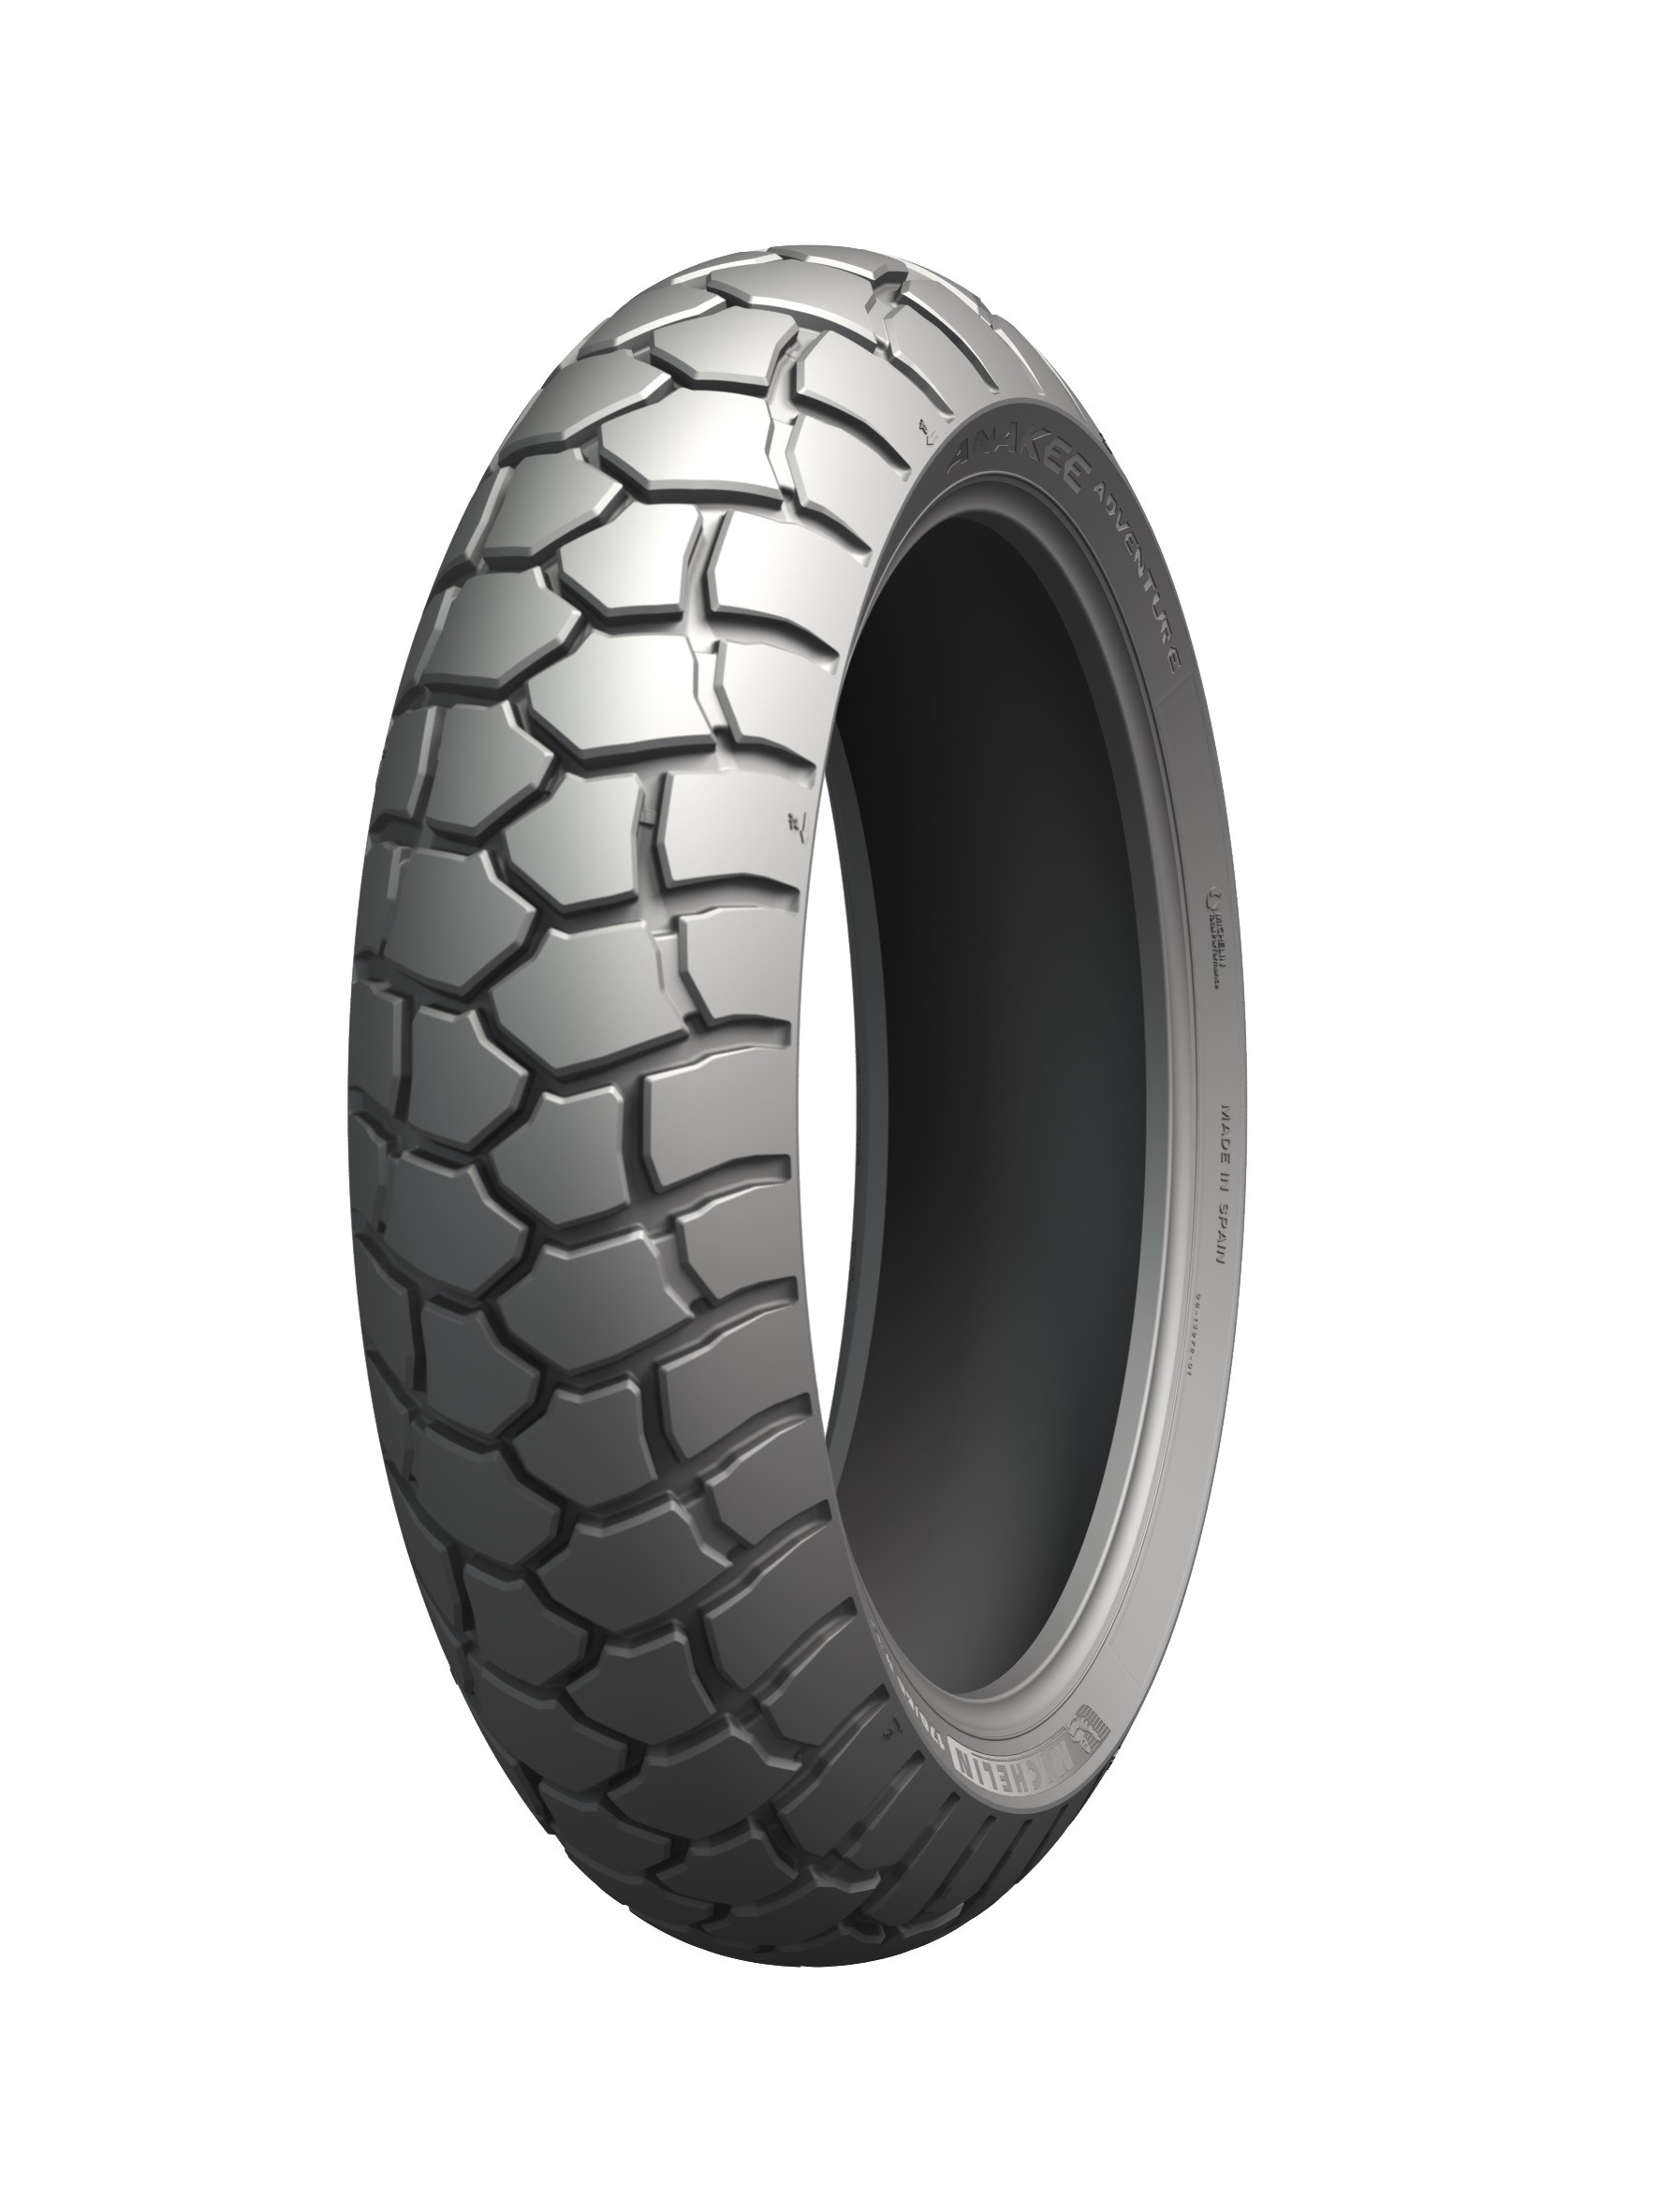 140/80-17 R 69H, MICHELIN Anakee adventure Taka TL/TT